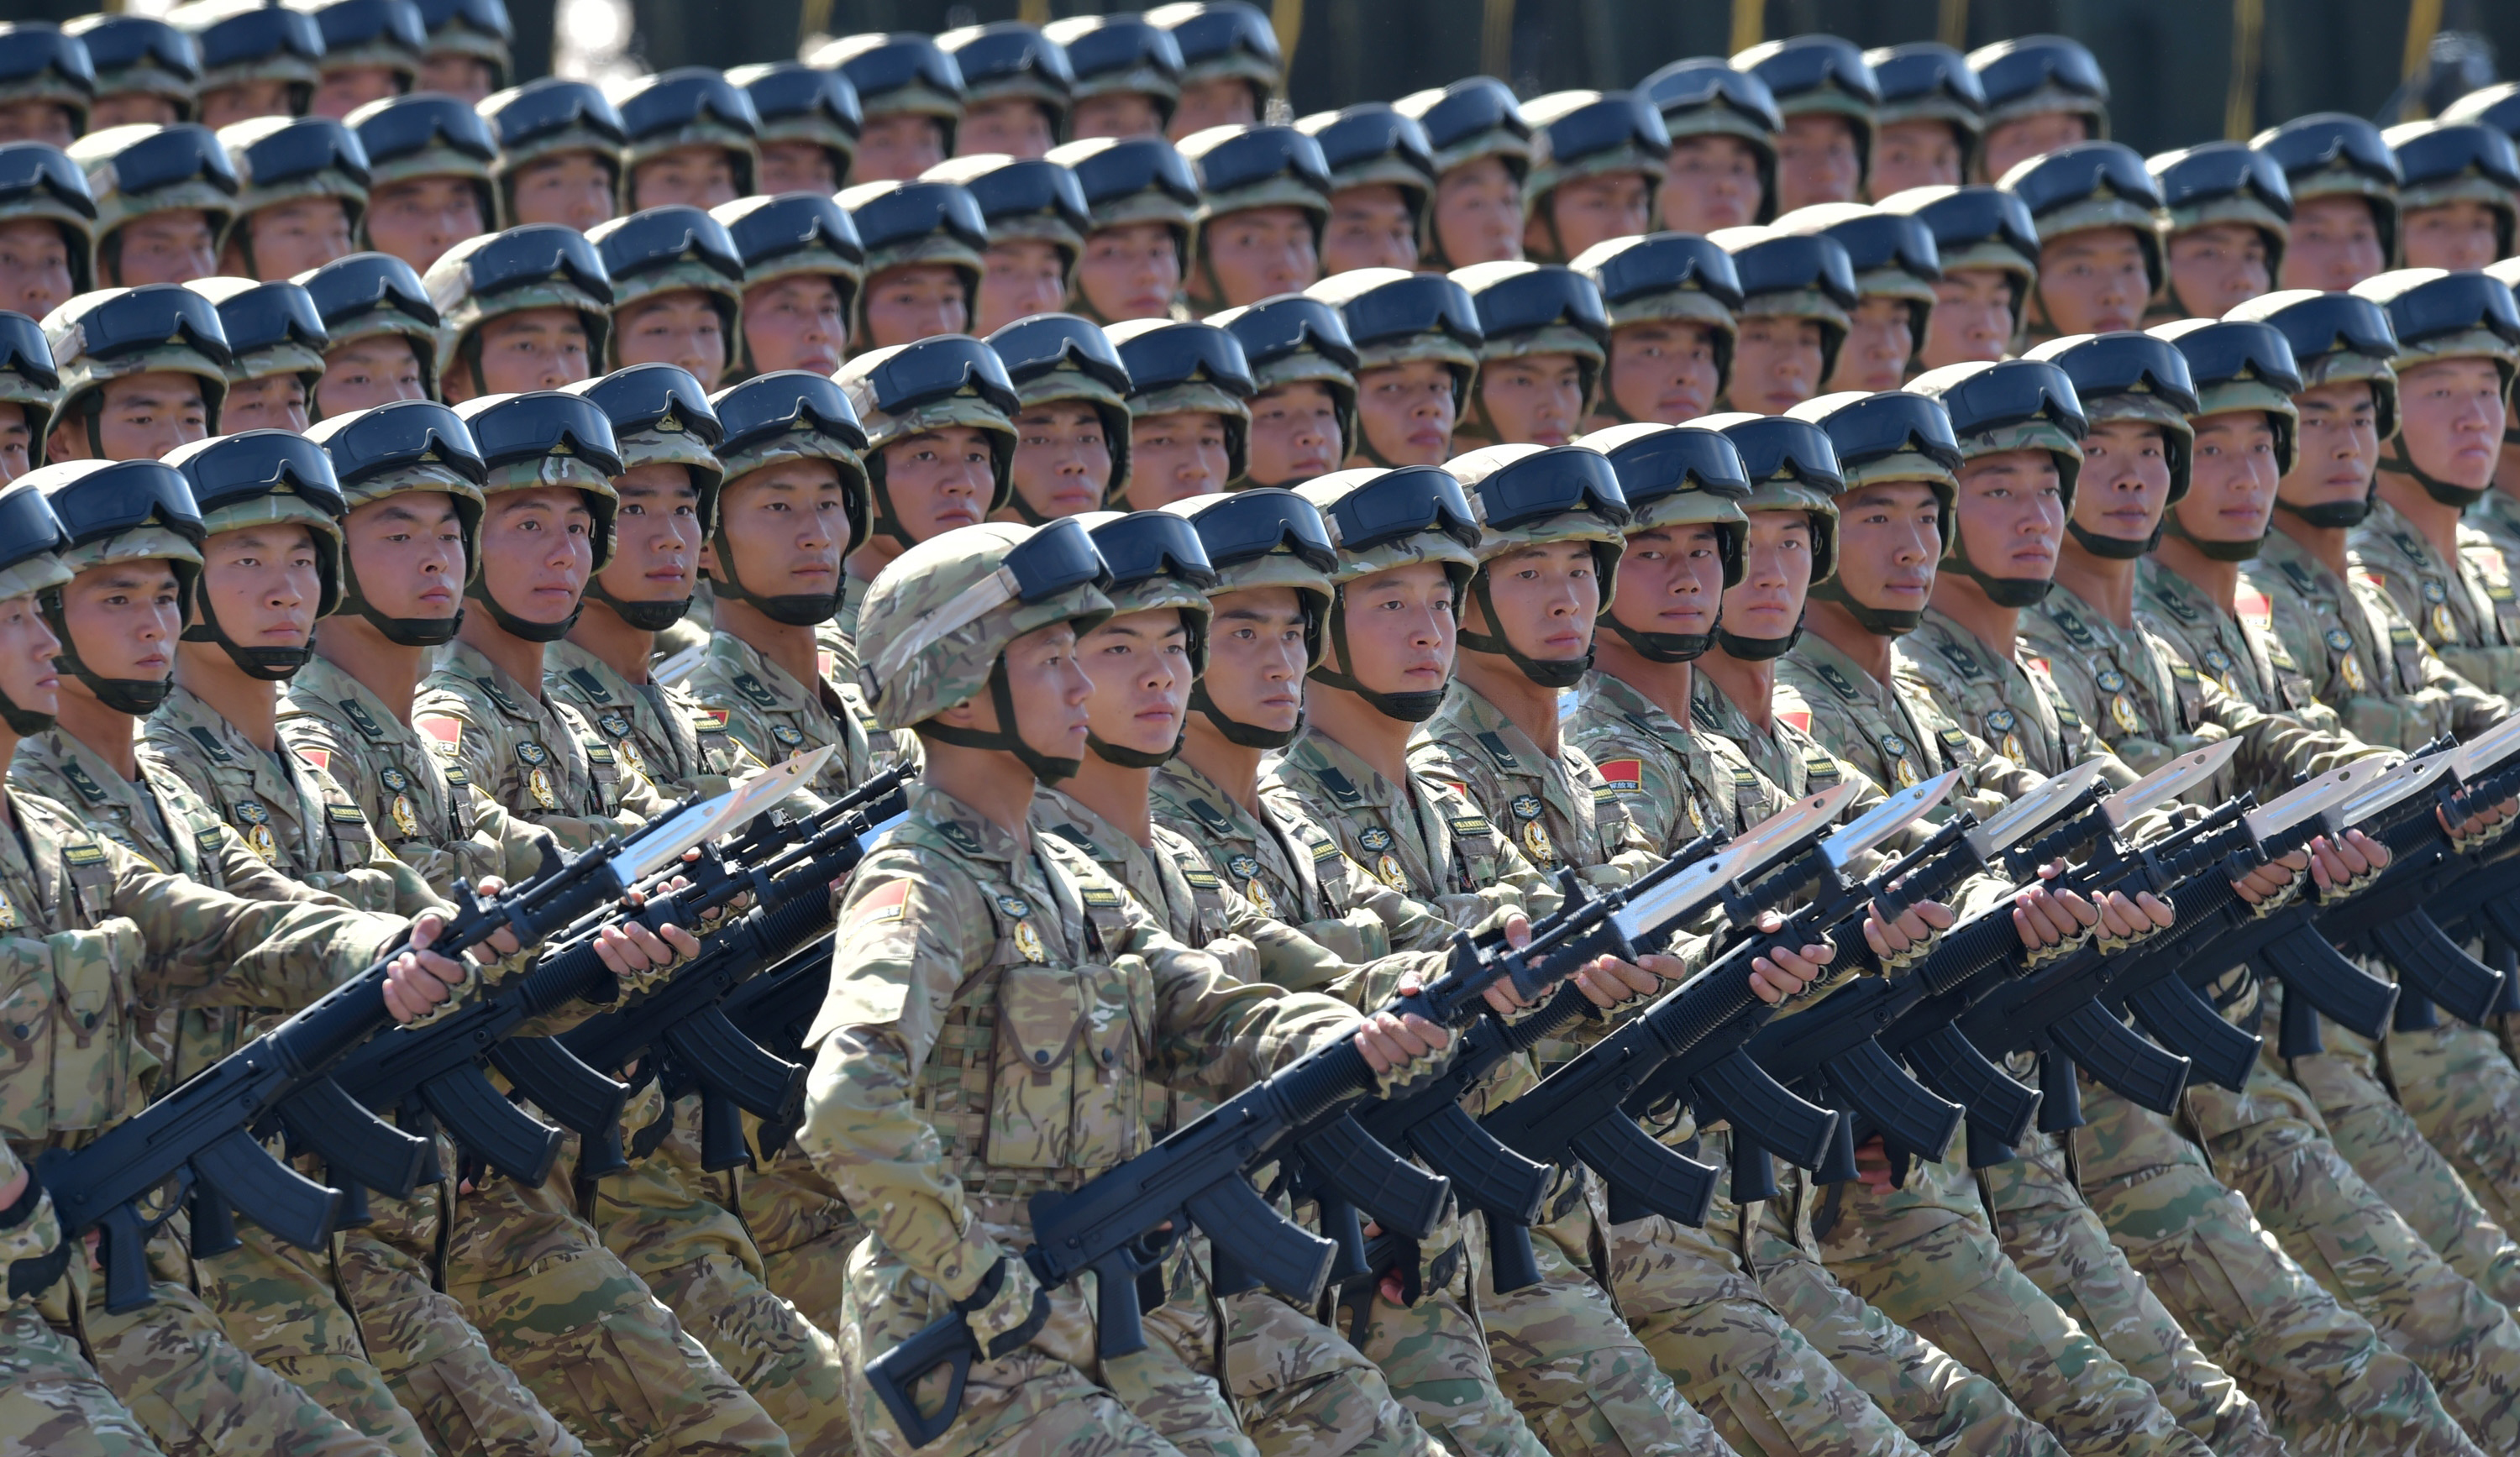 Soldiers attend a military parade in Beijing, China, on Sept. 3, 2015, to mark the 70th anniversary of the military victory against Japan